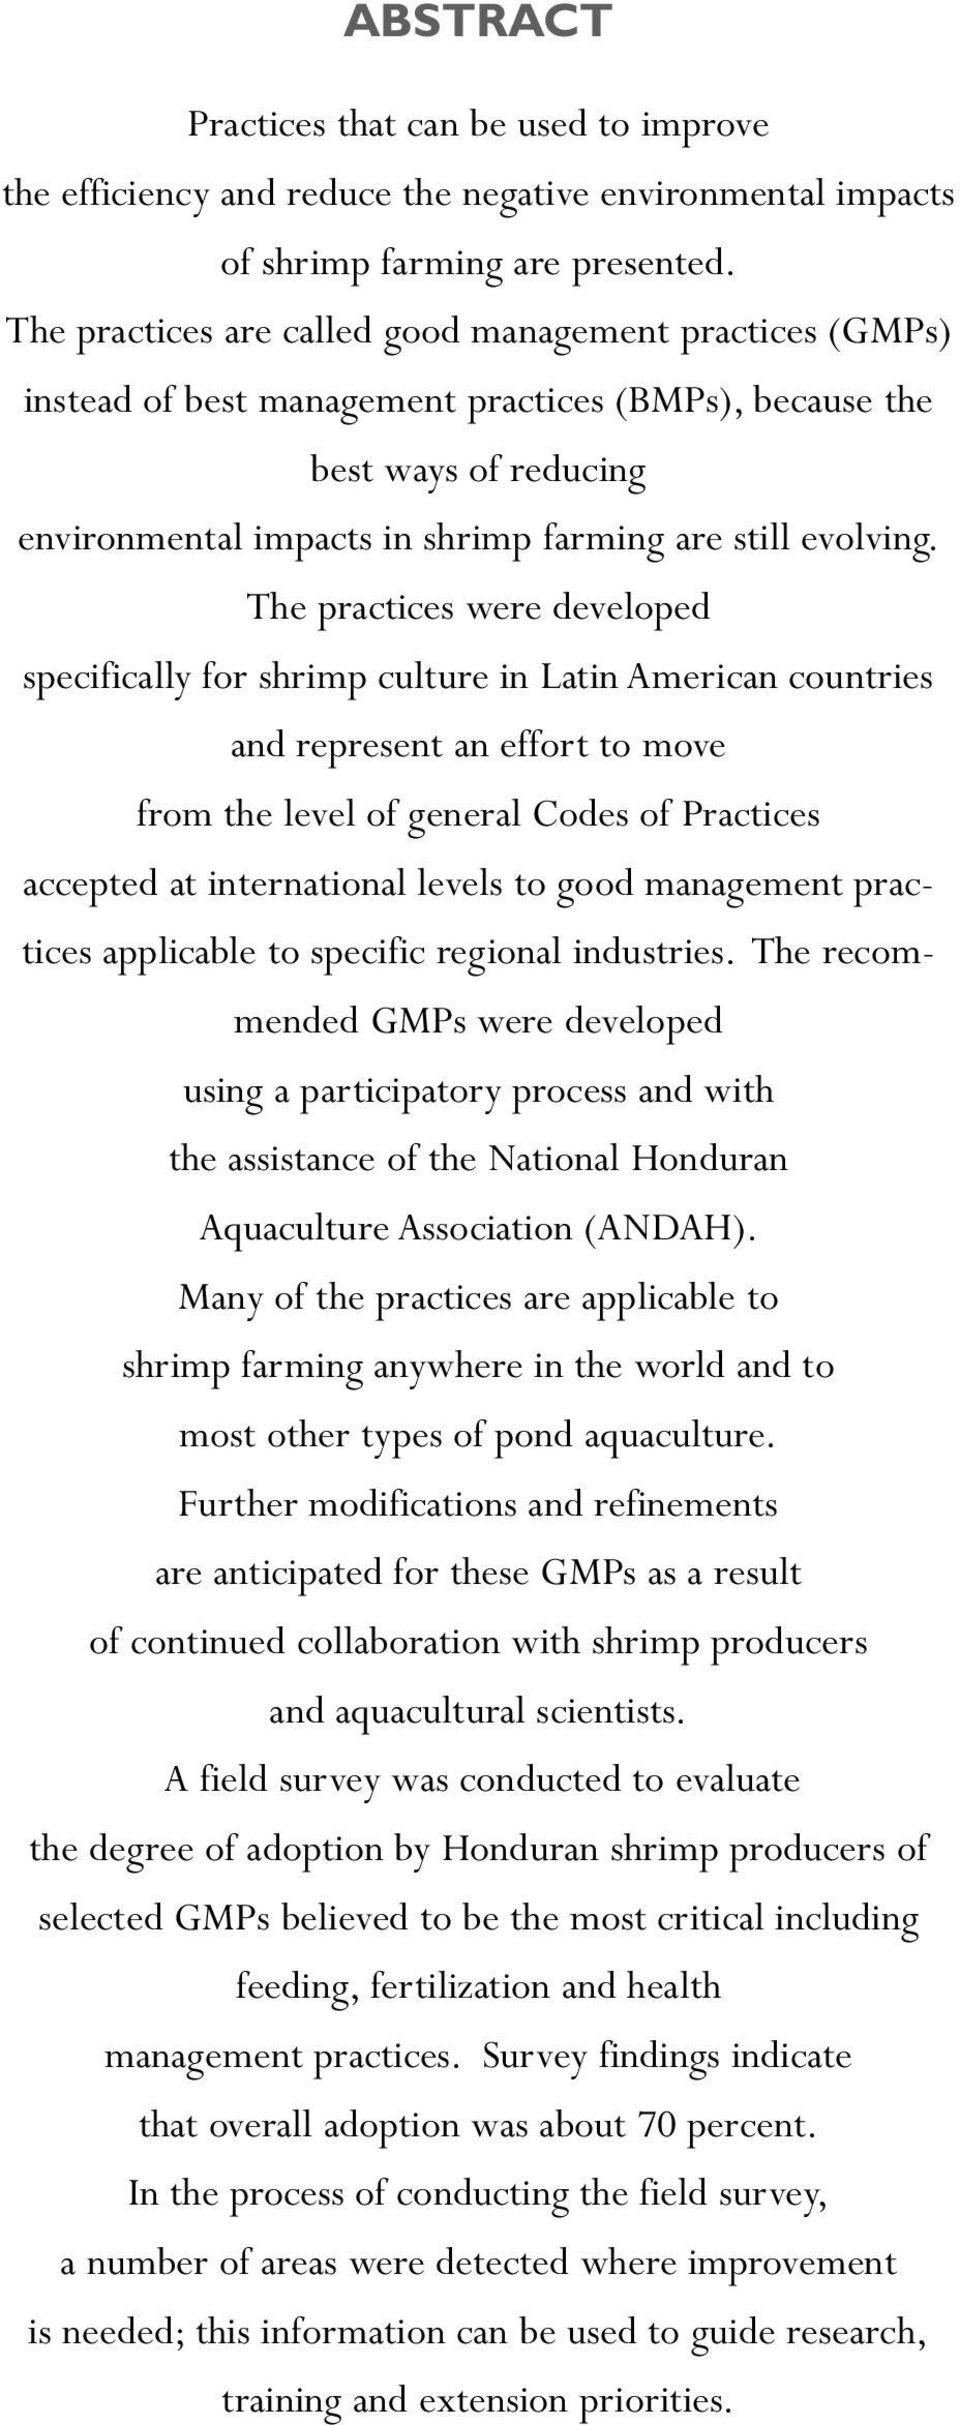 The practices were developed specifically for shrimp culture in Latin American countries and represent an effort to move from the level of general Codes of Practices accepted at international levels